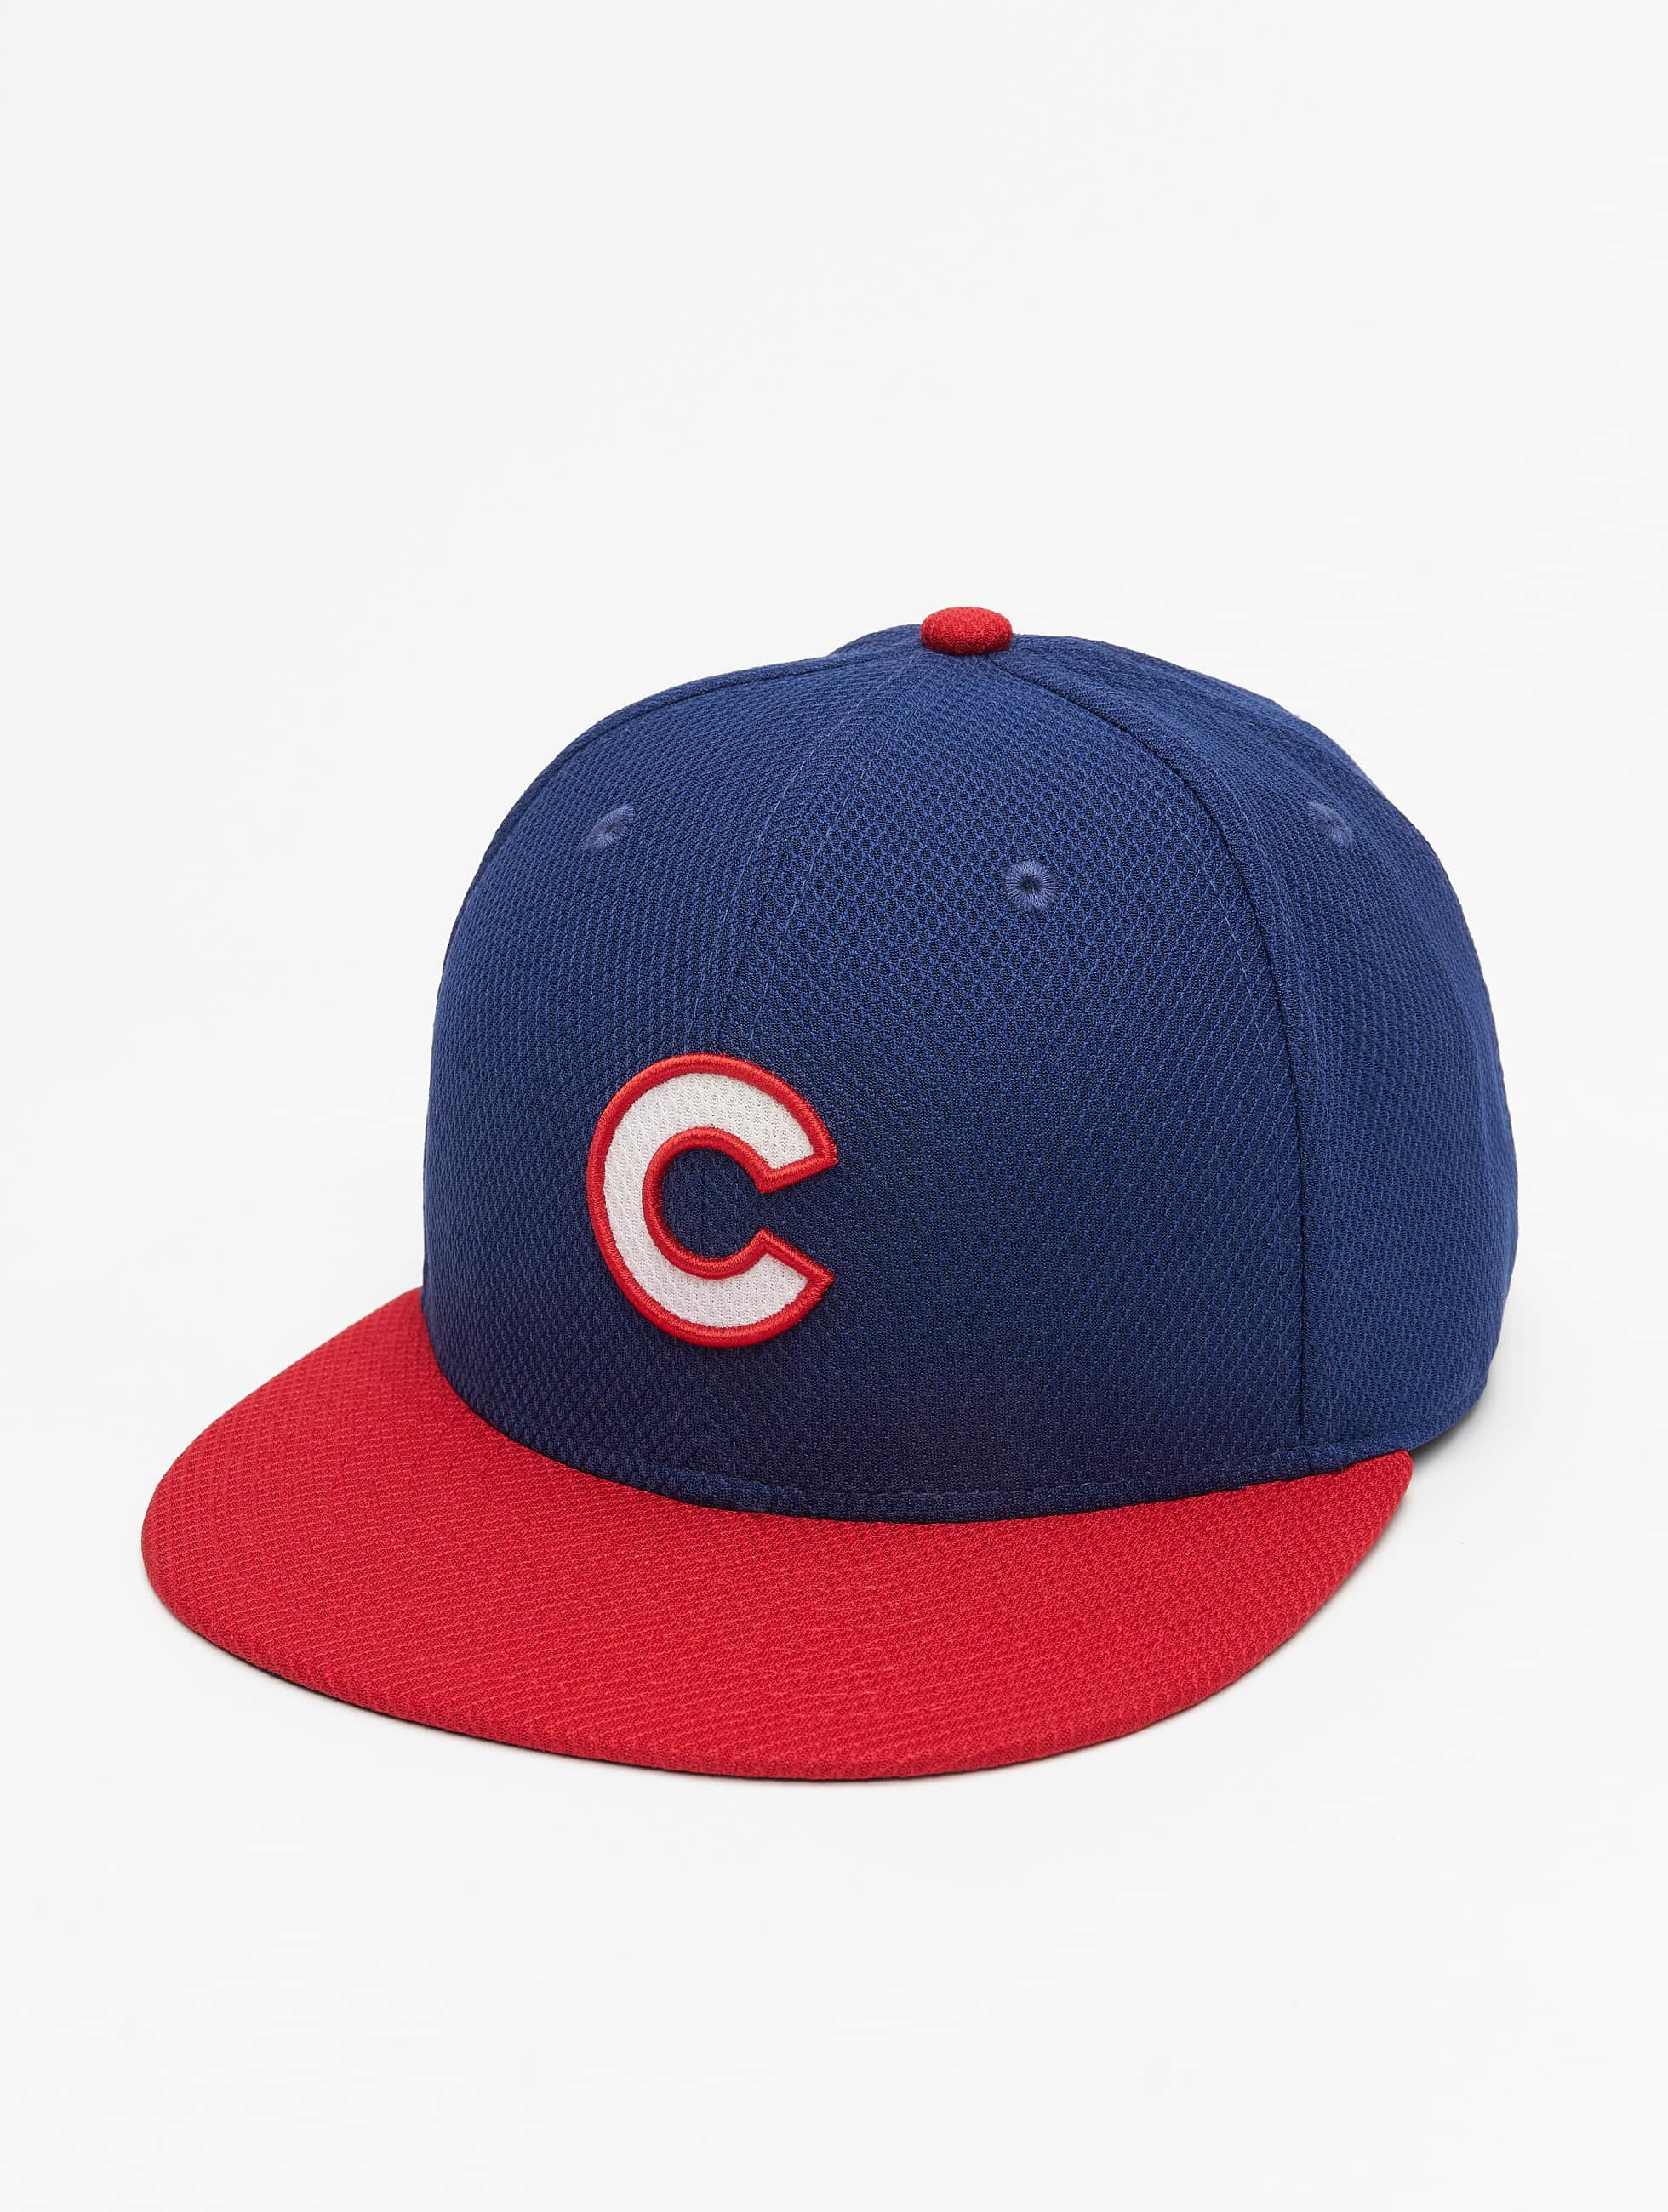 New Era Männer,Frauen Fitted Cap Diamond Chicago Cubs in blau Sale Angebote Guteborn